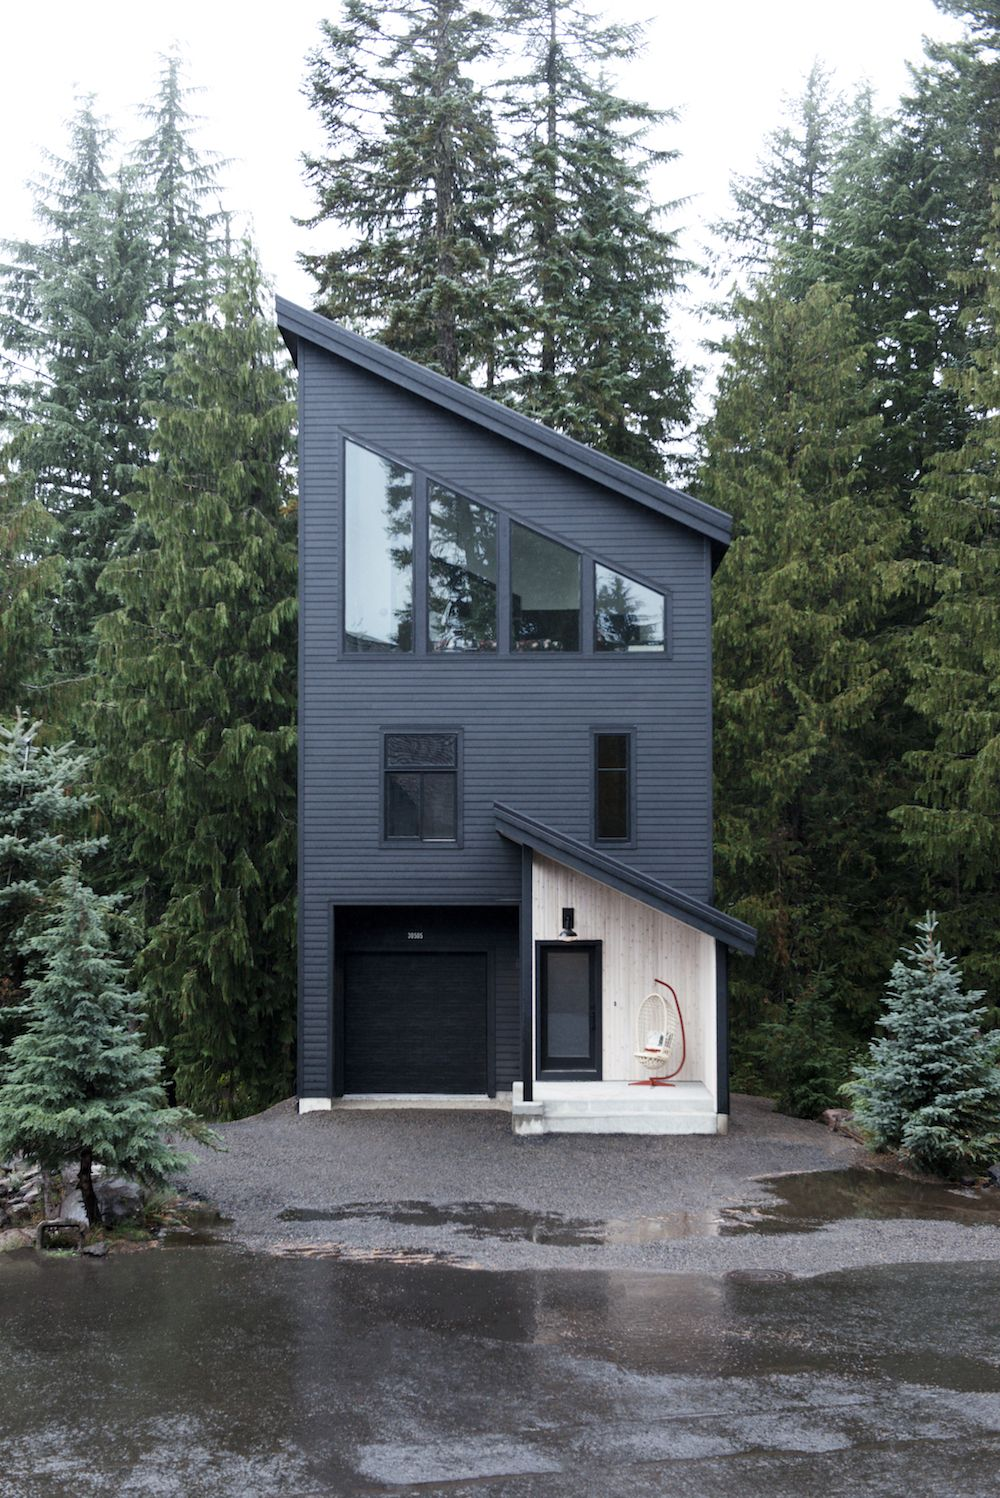 This modern ski chalet weekend retreat in Oregon is what dreams are made of